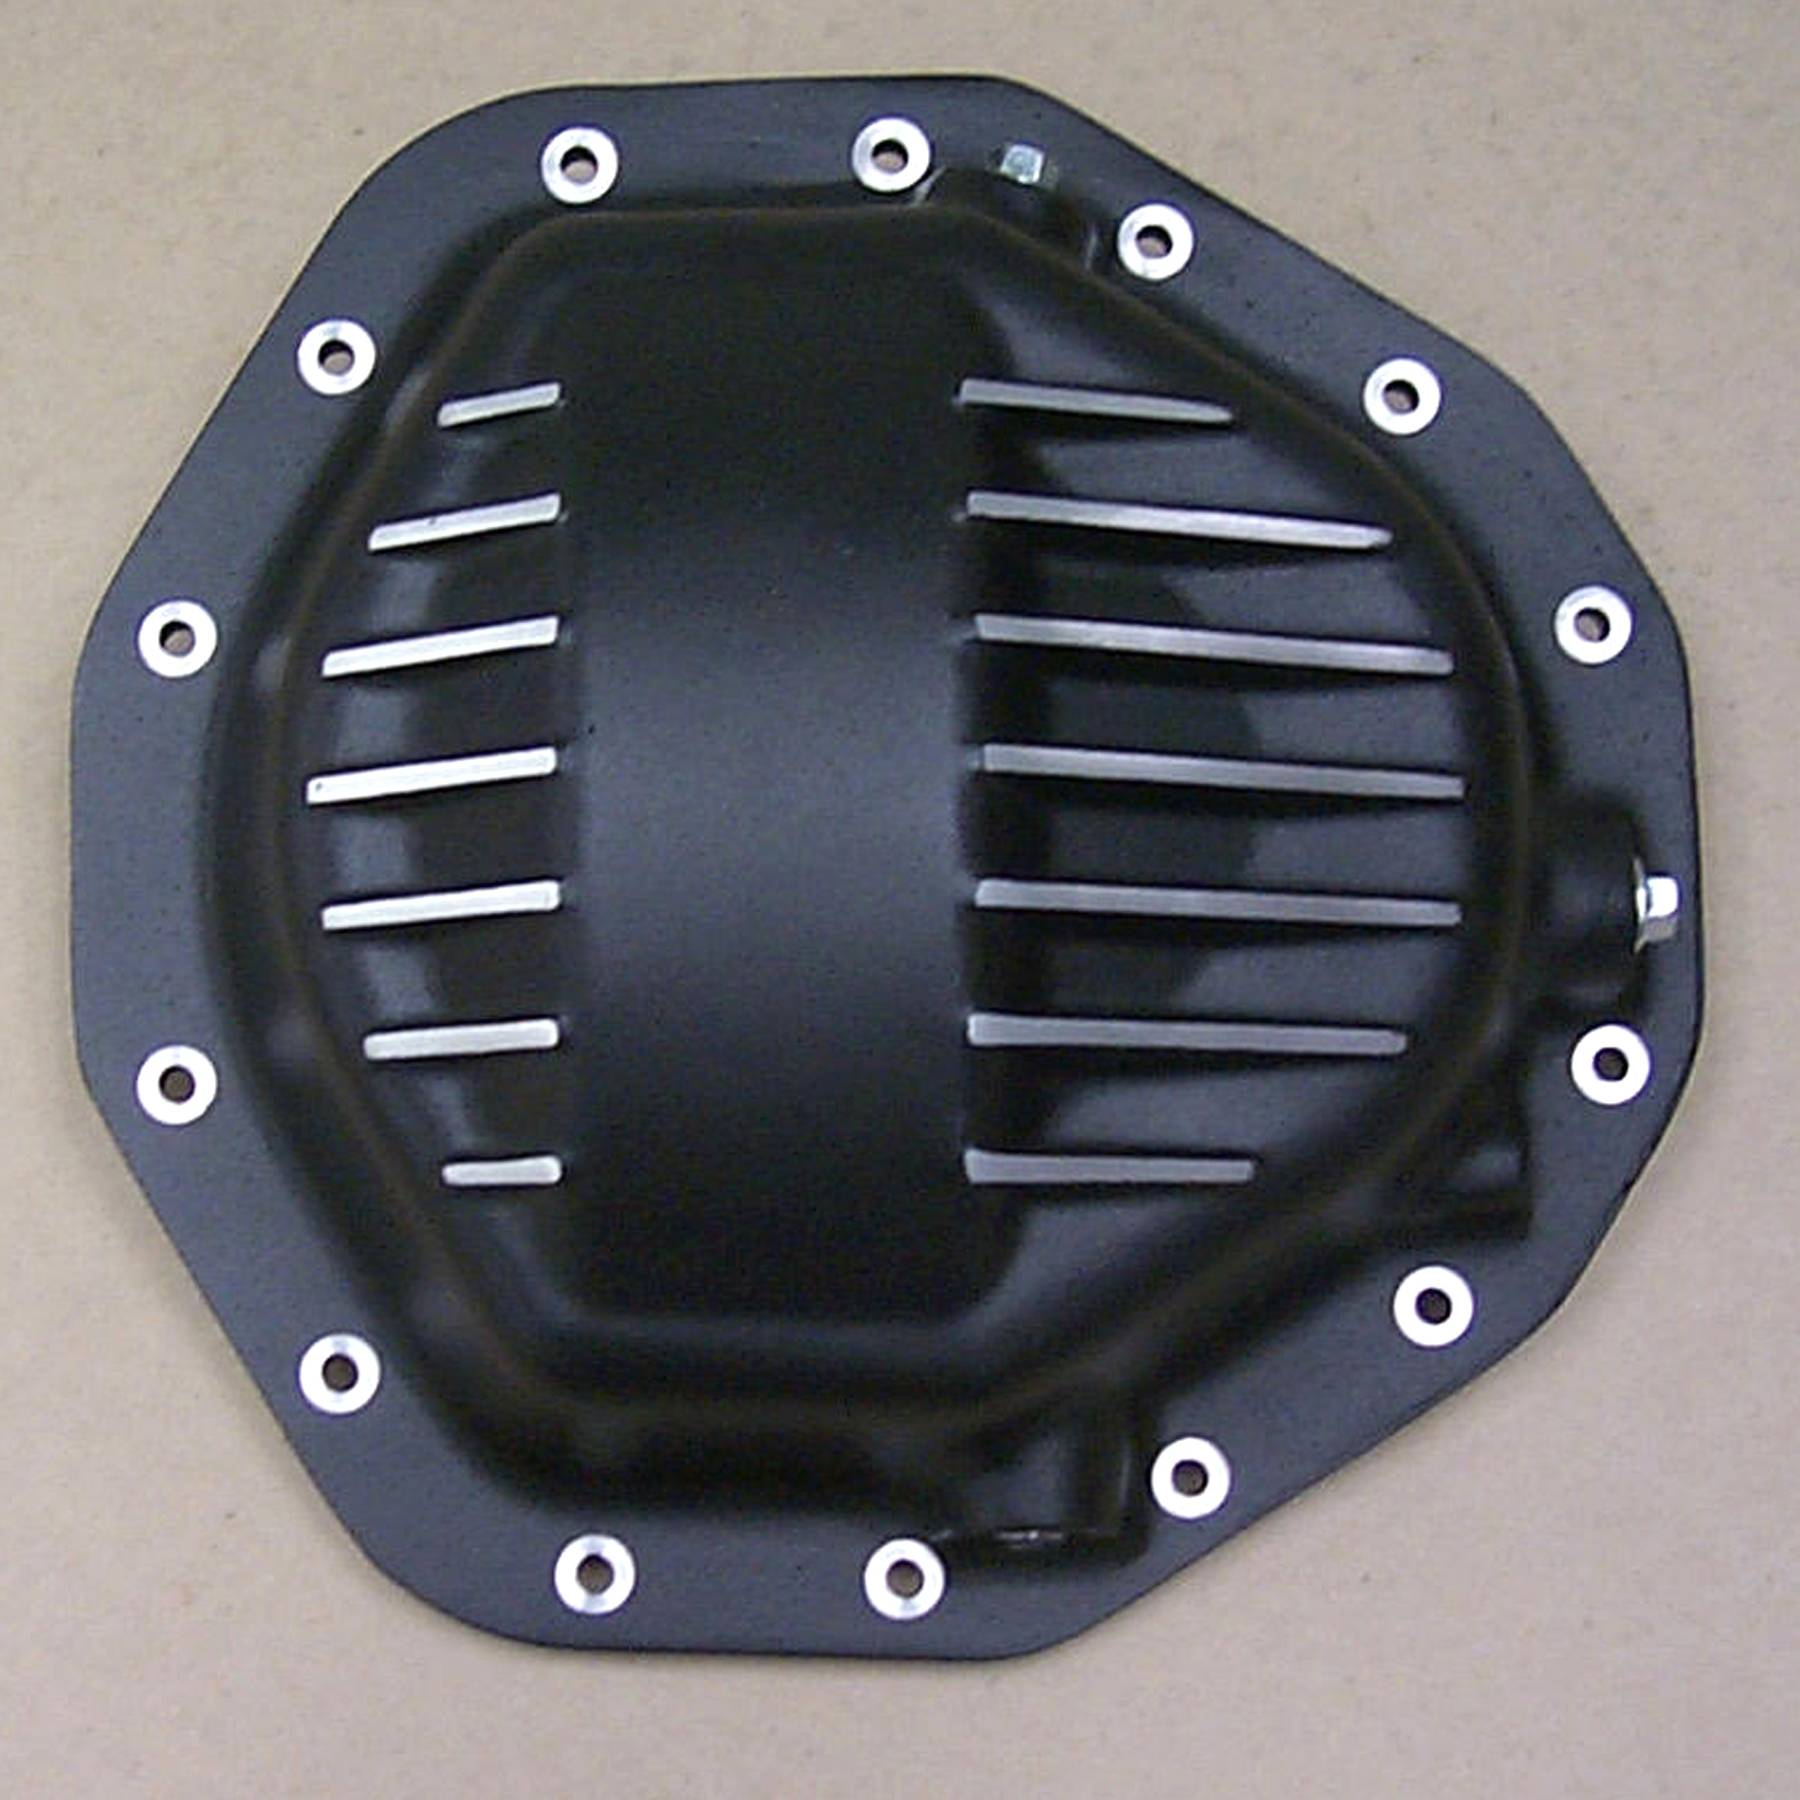 PML transmission pan and differential covers can add years ...